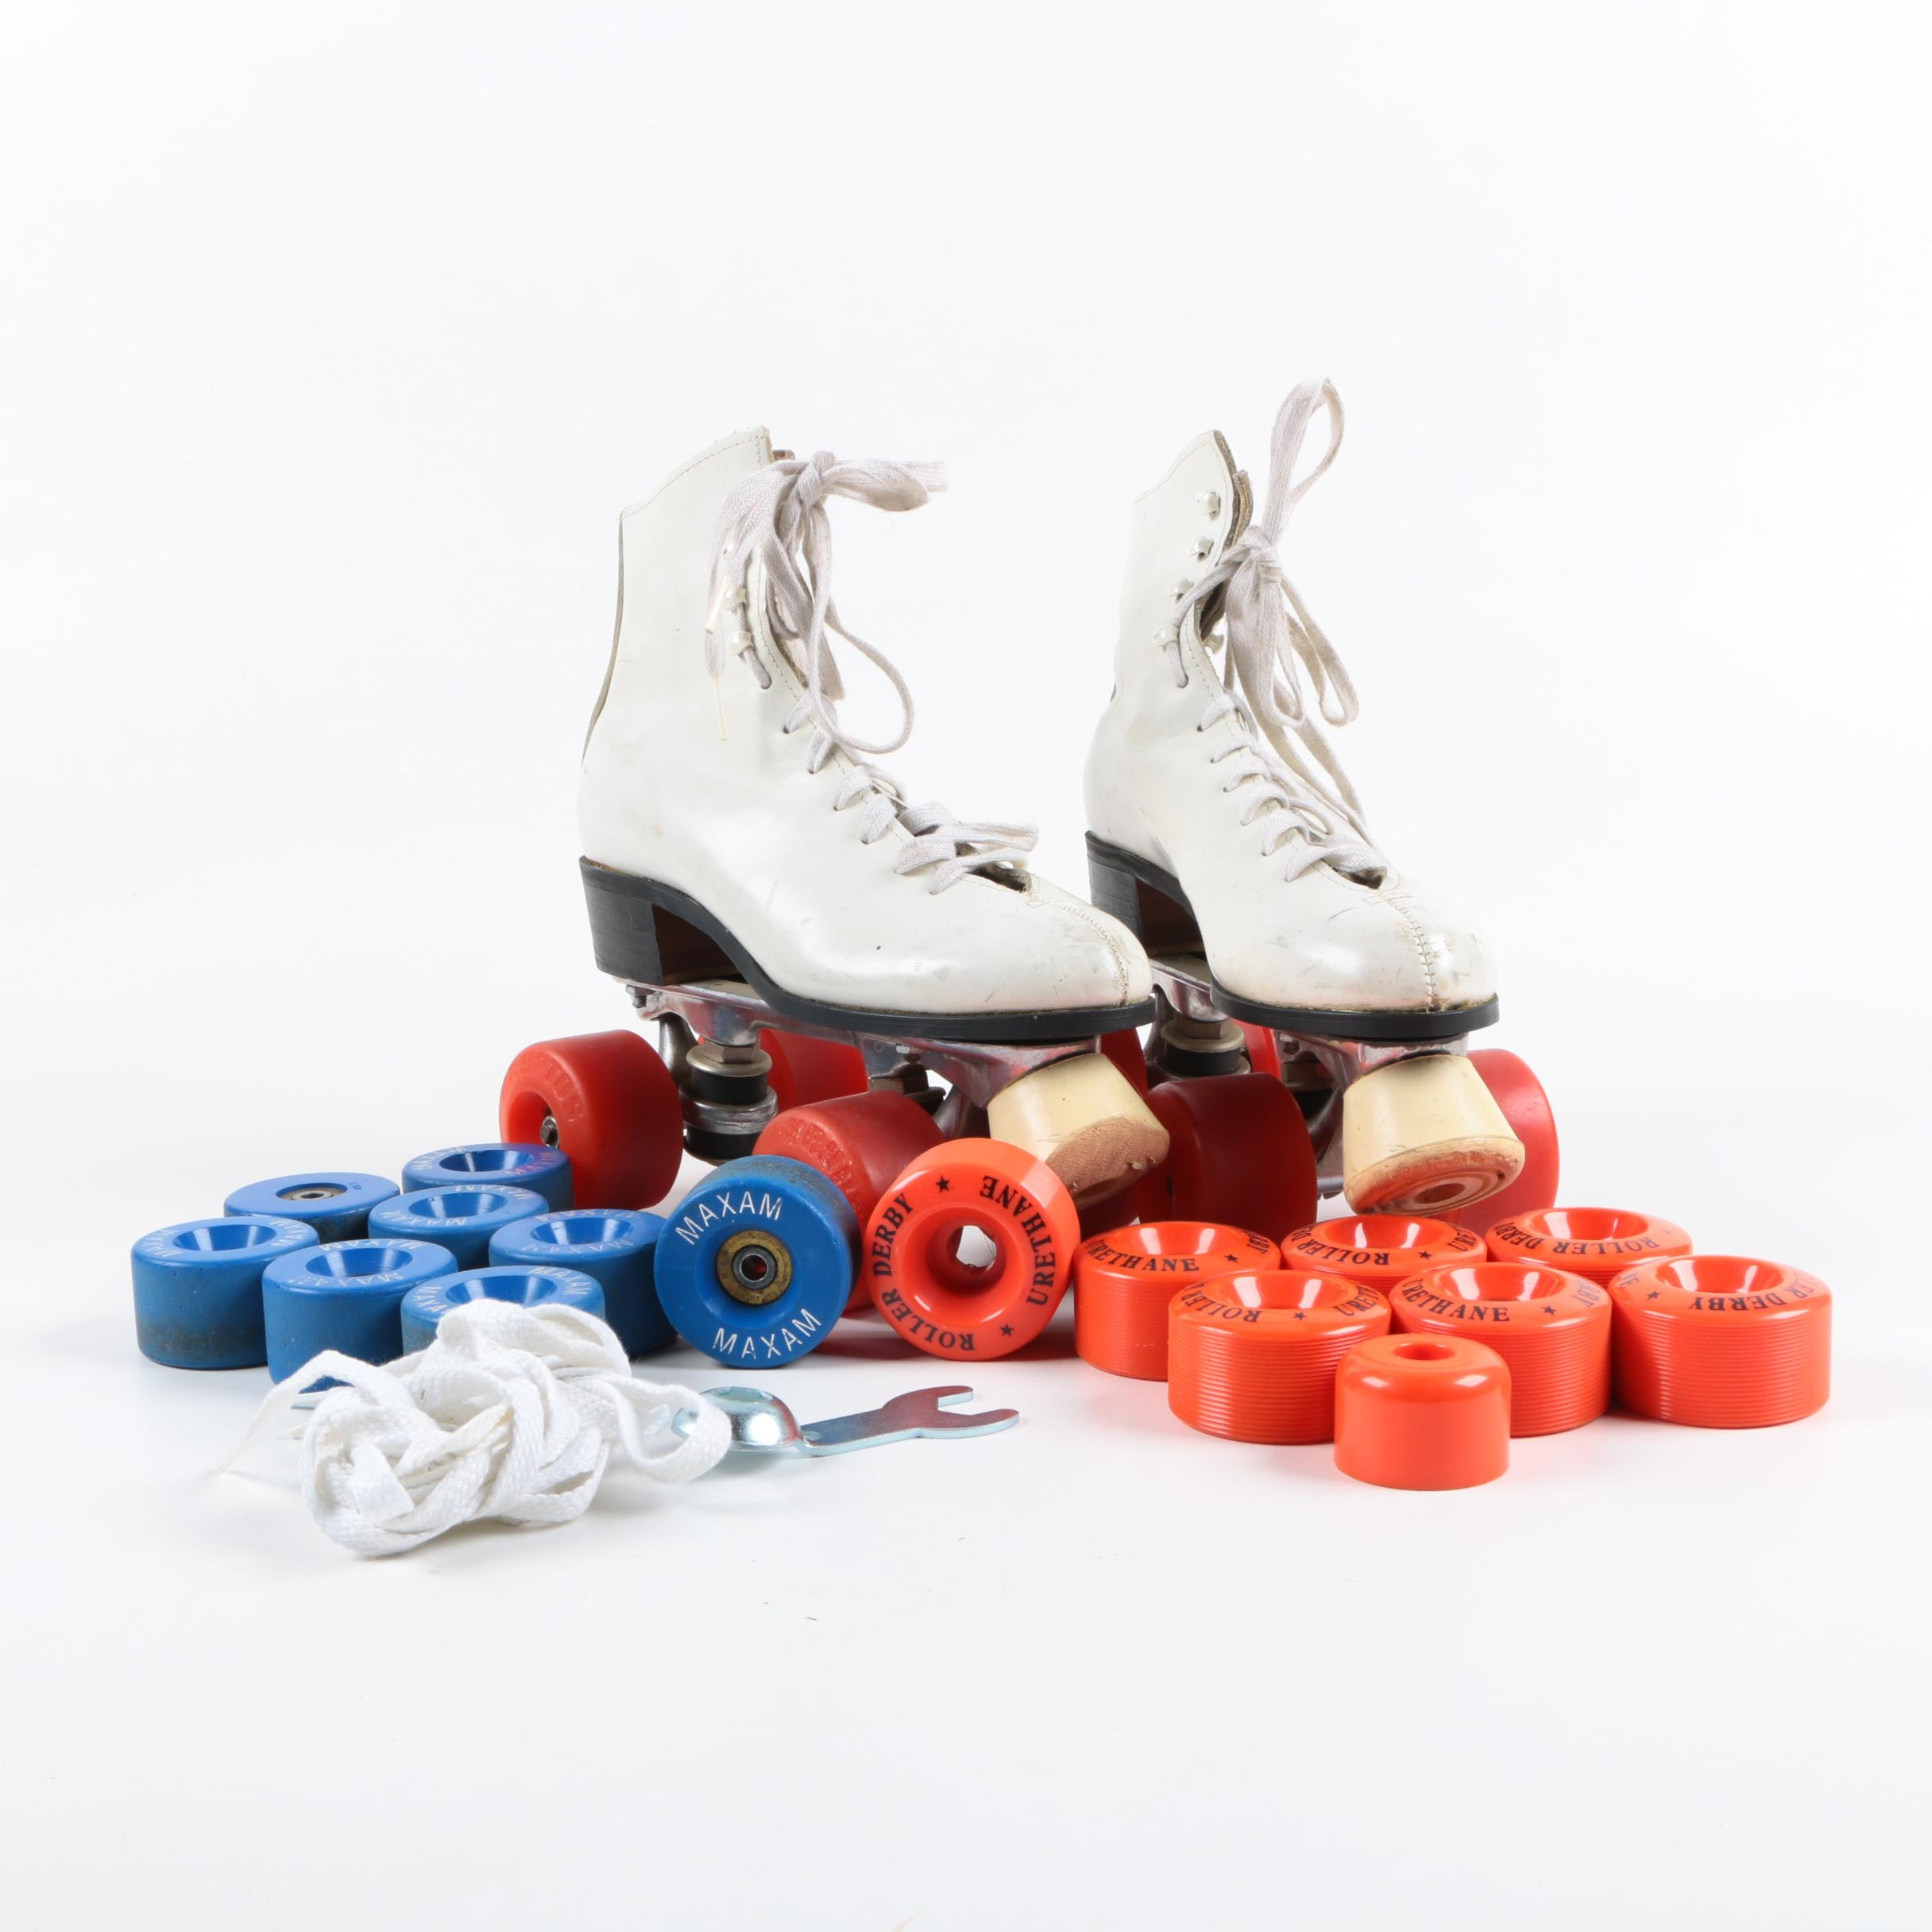 Women's Roller Skates with Extra Wheels and Laces